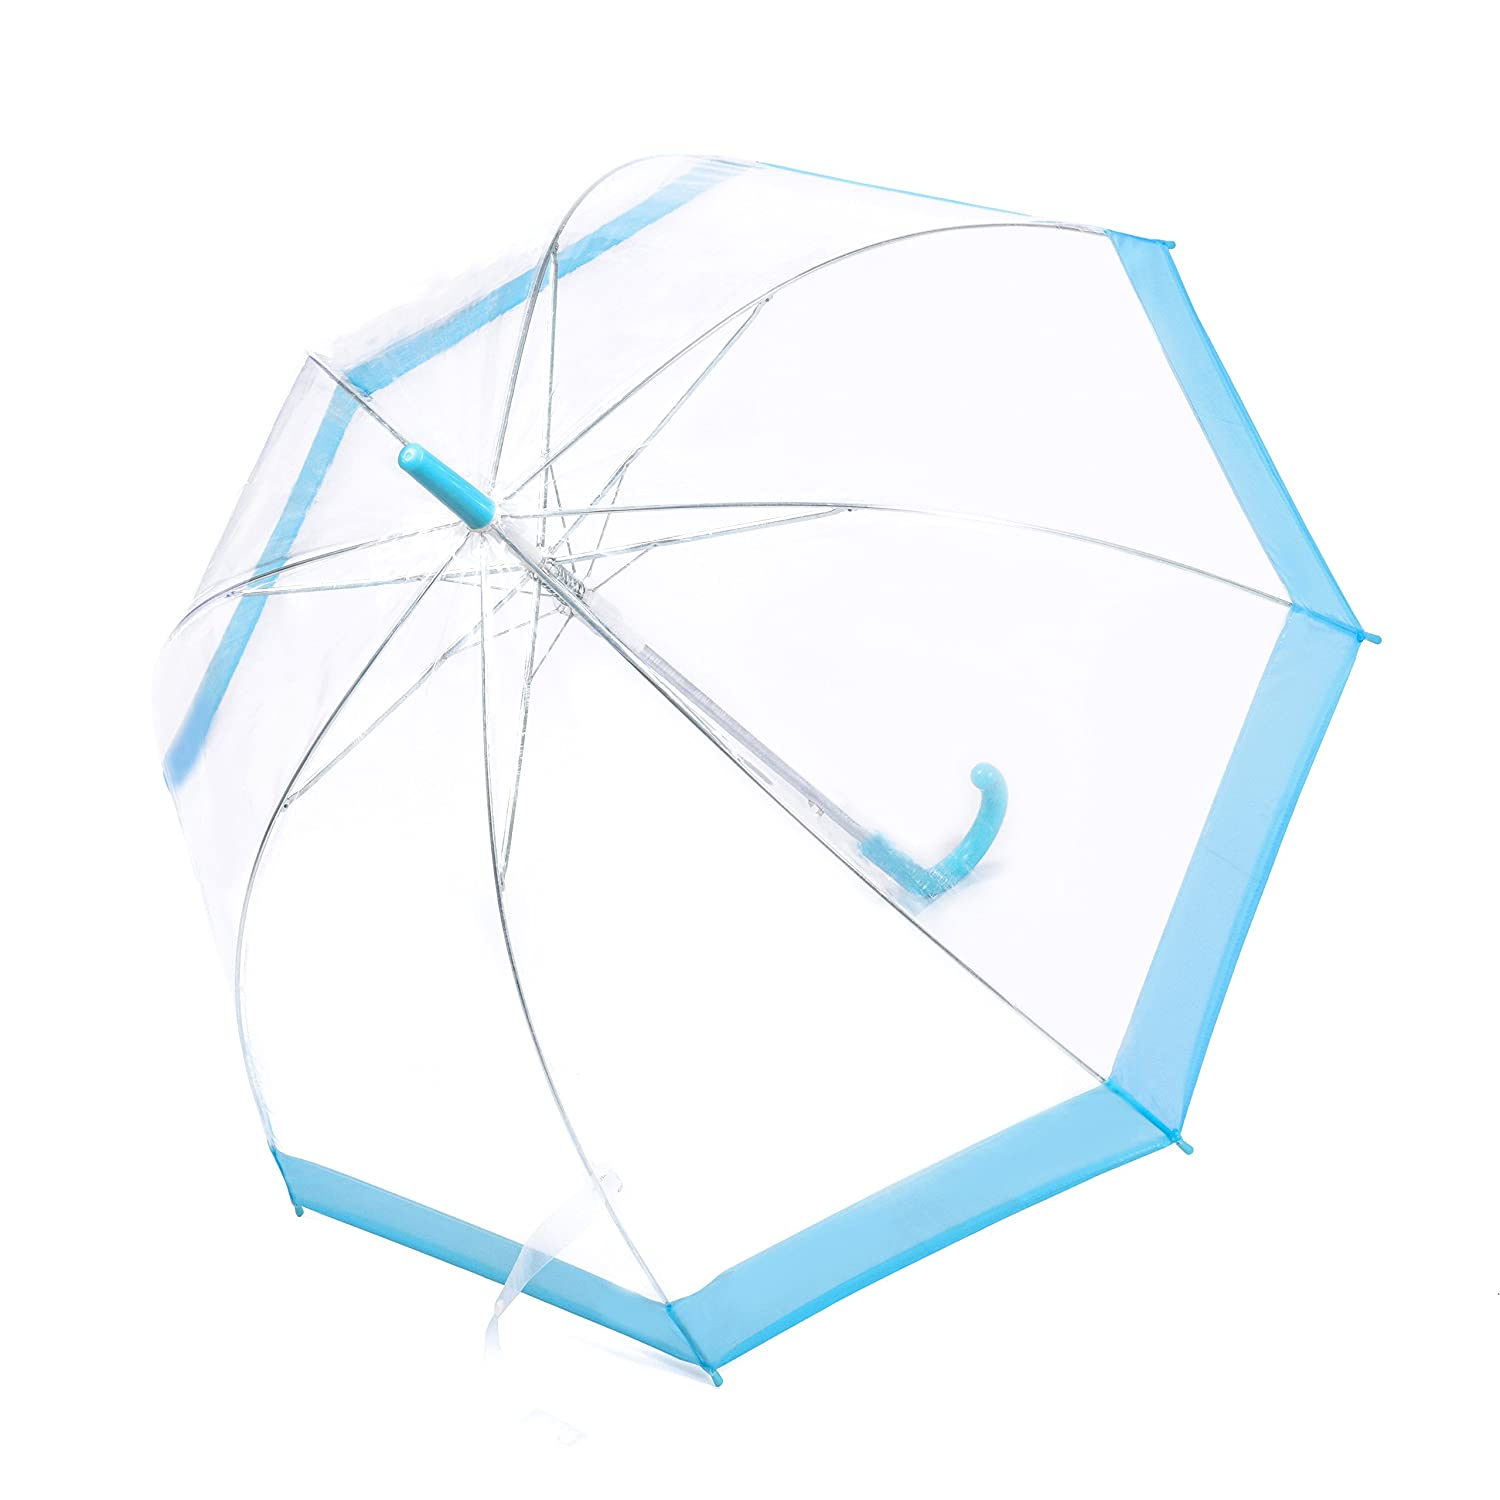 Rainbrace Clear Transparent Bubble Umbrella Auto Open, Fashion Dome Shape with Color Trim (Black)